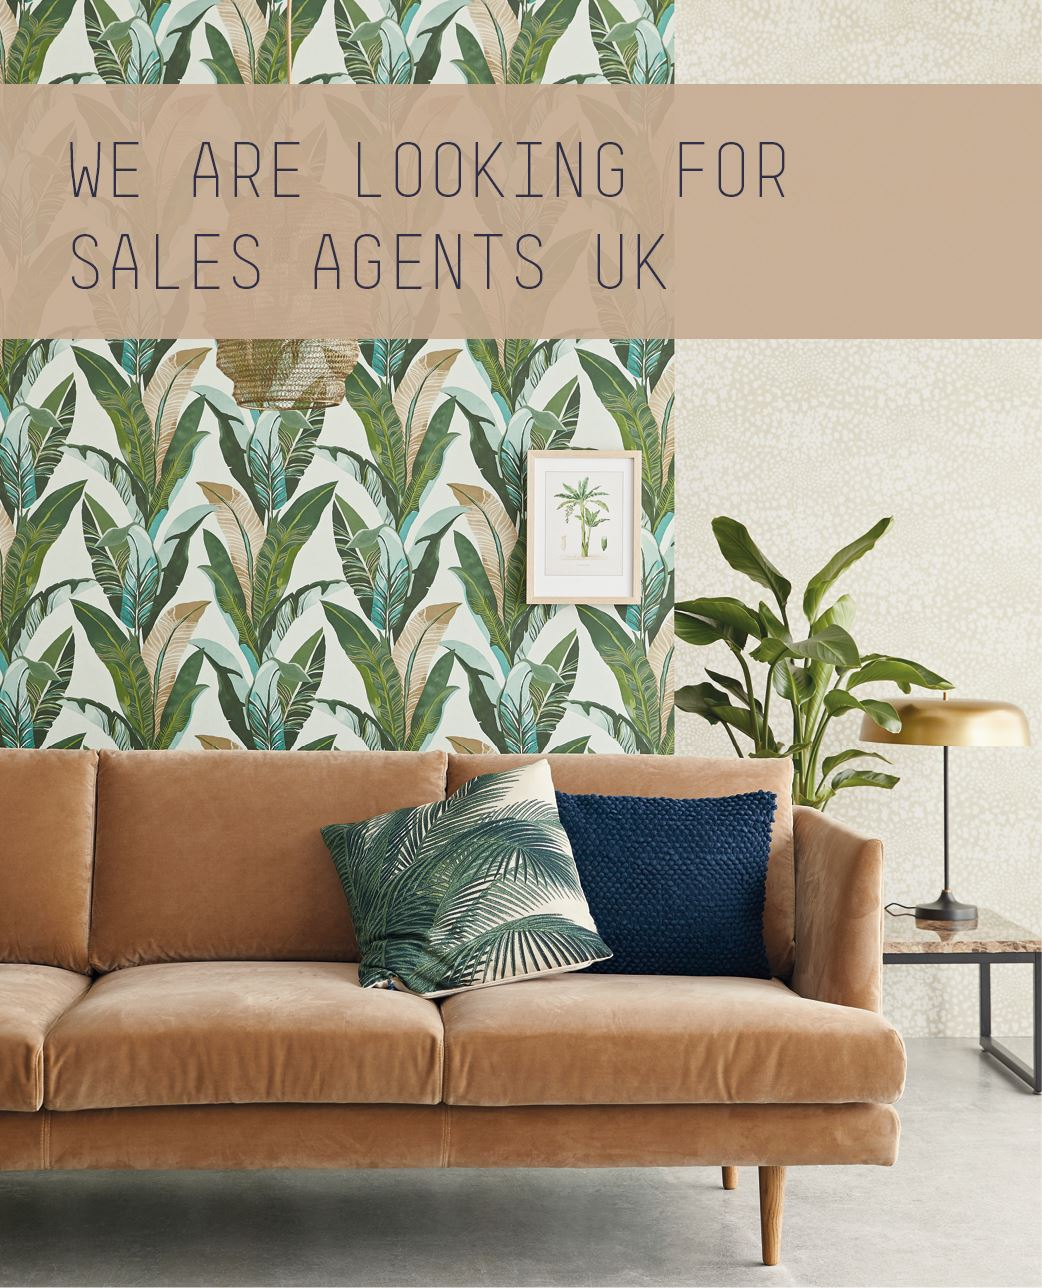 We are looking for Sales Agents UK